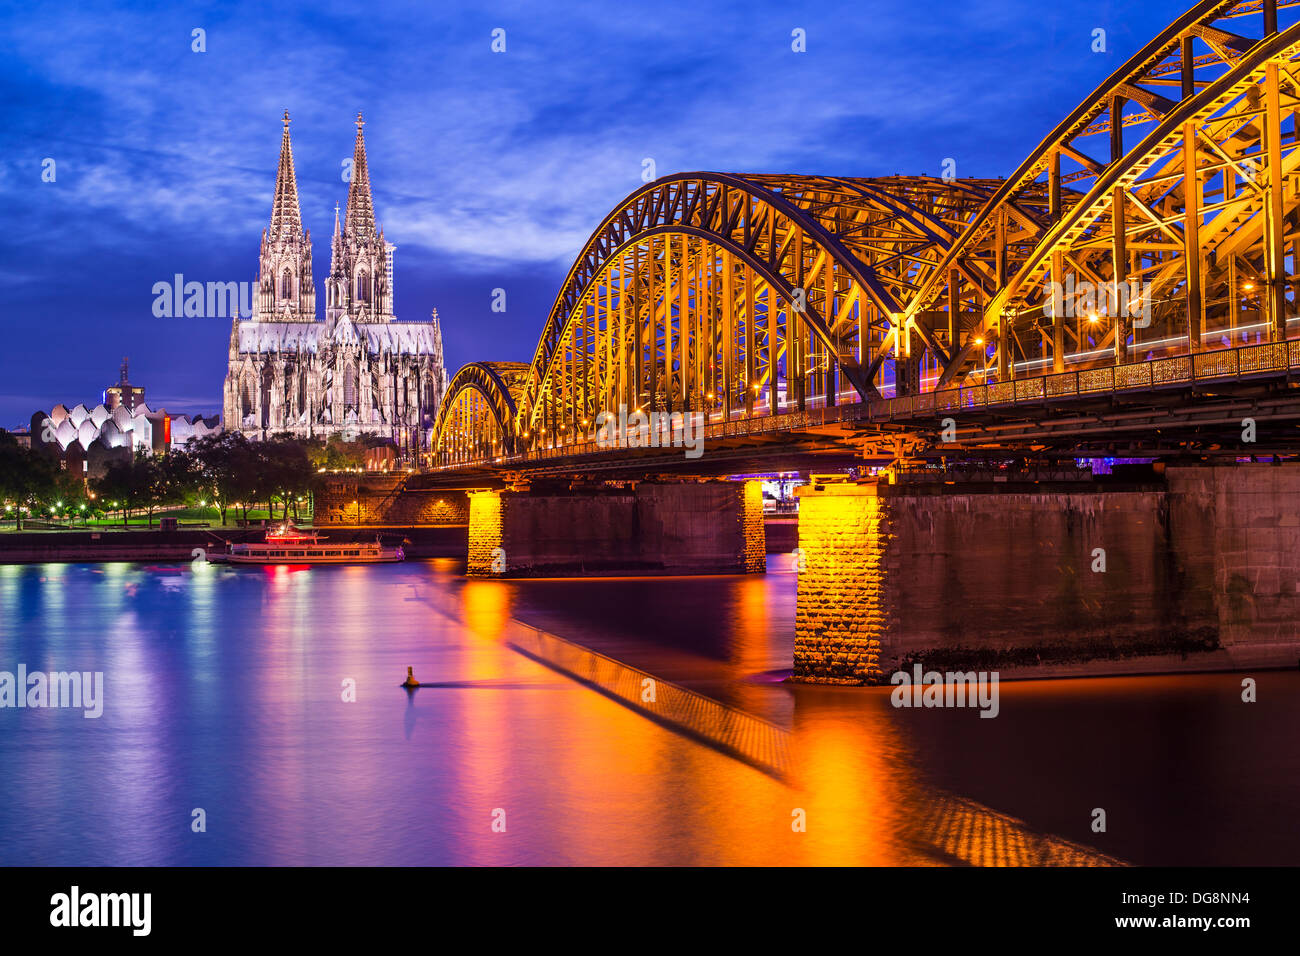 Cologne Cathedral in Cologne, Germany. Stock Photo